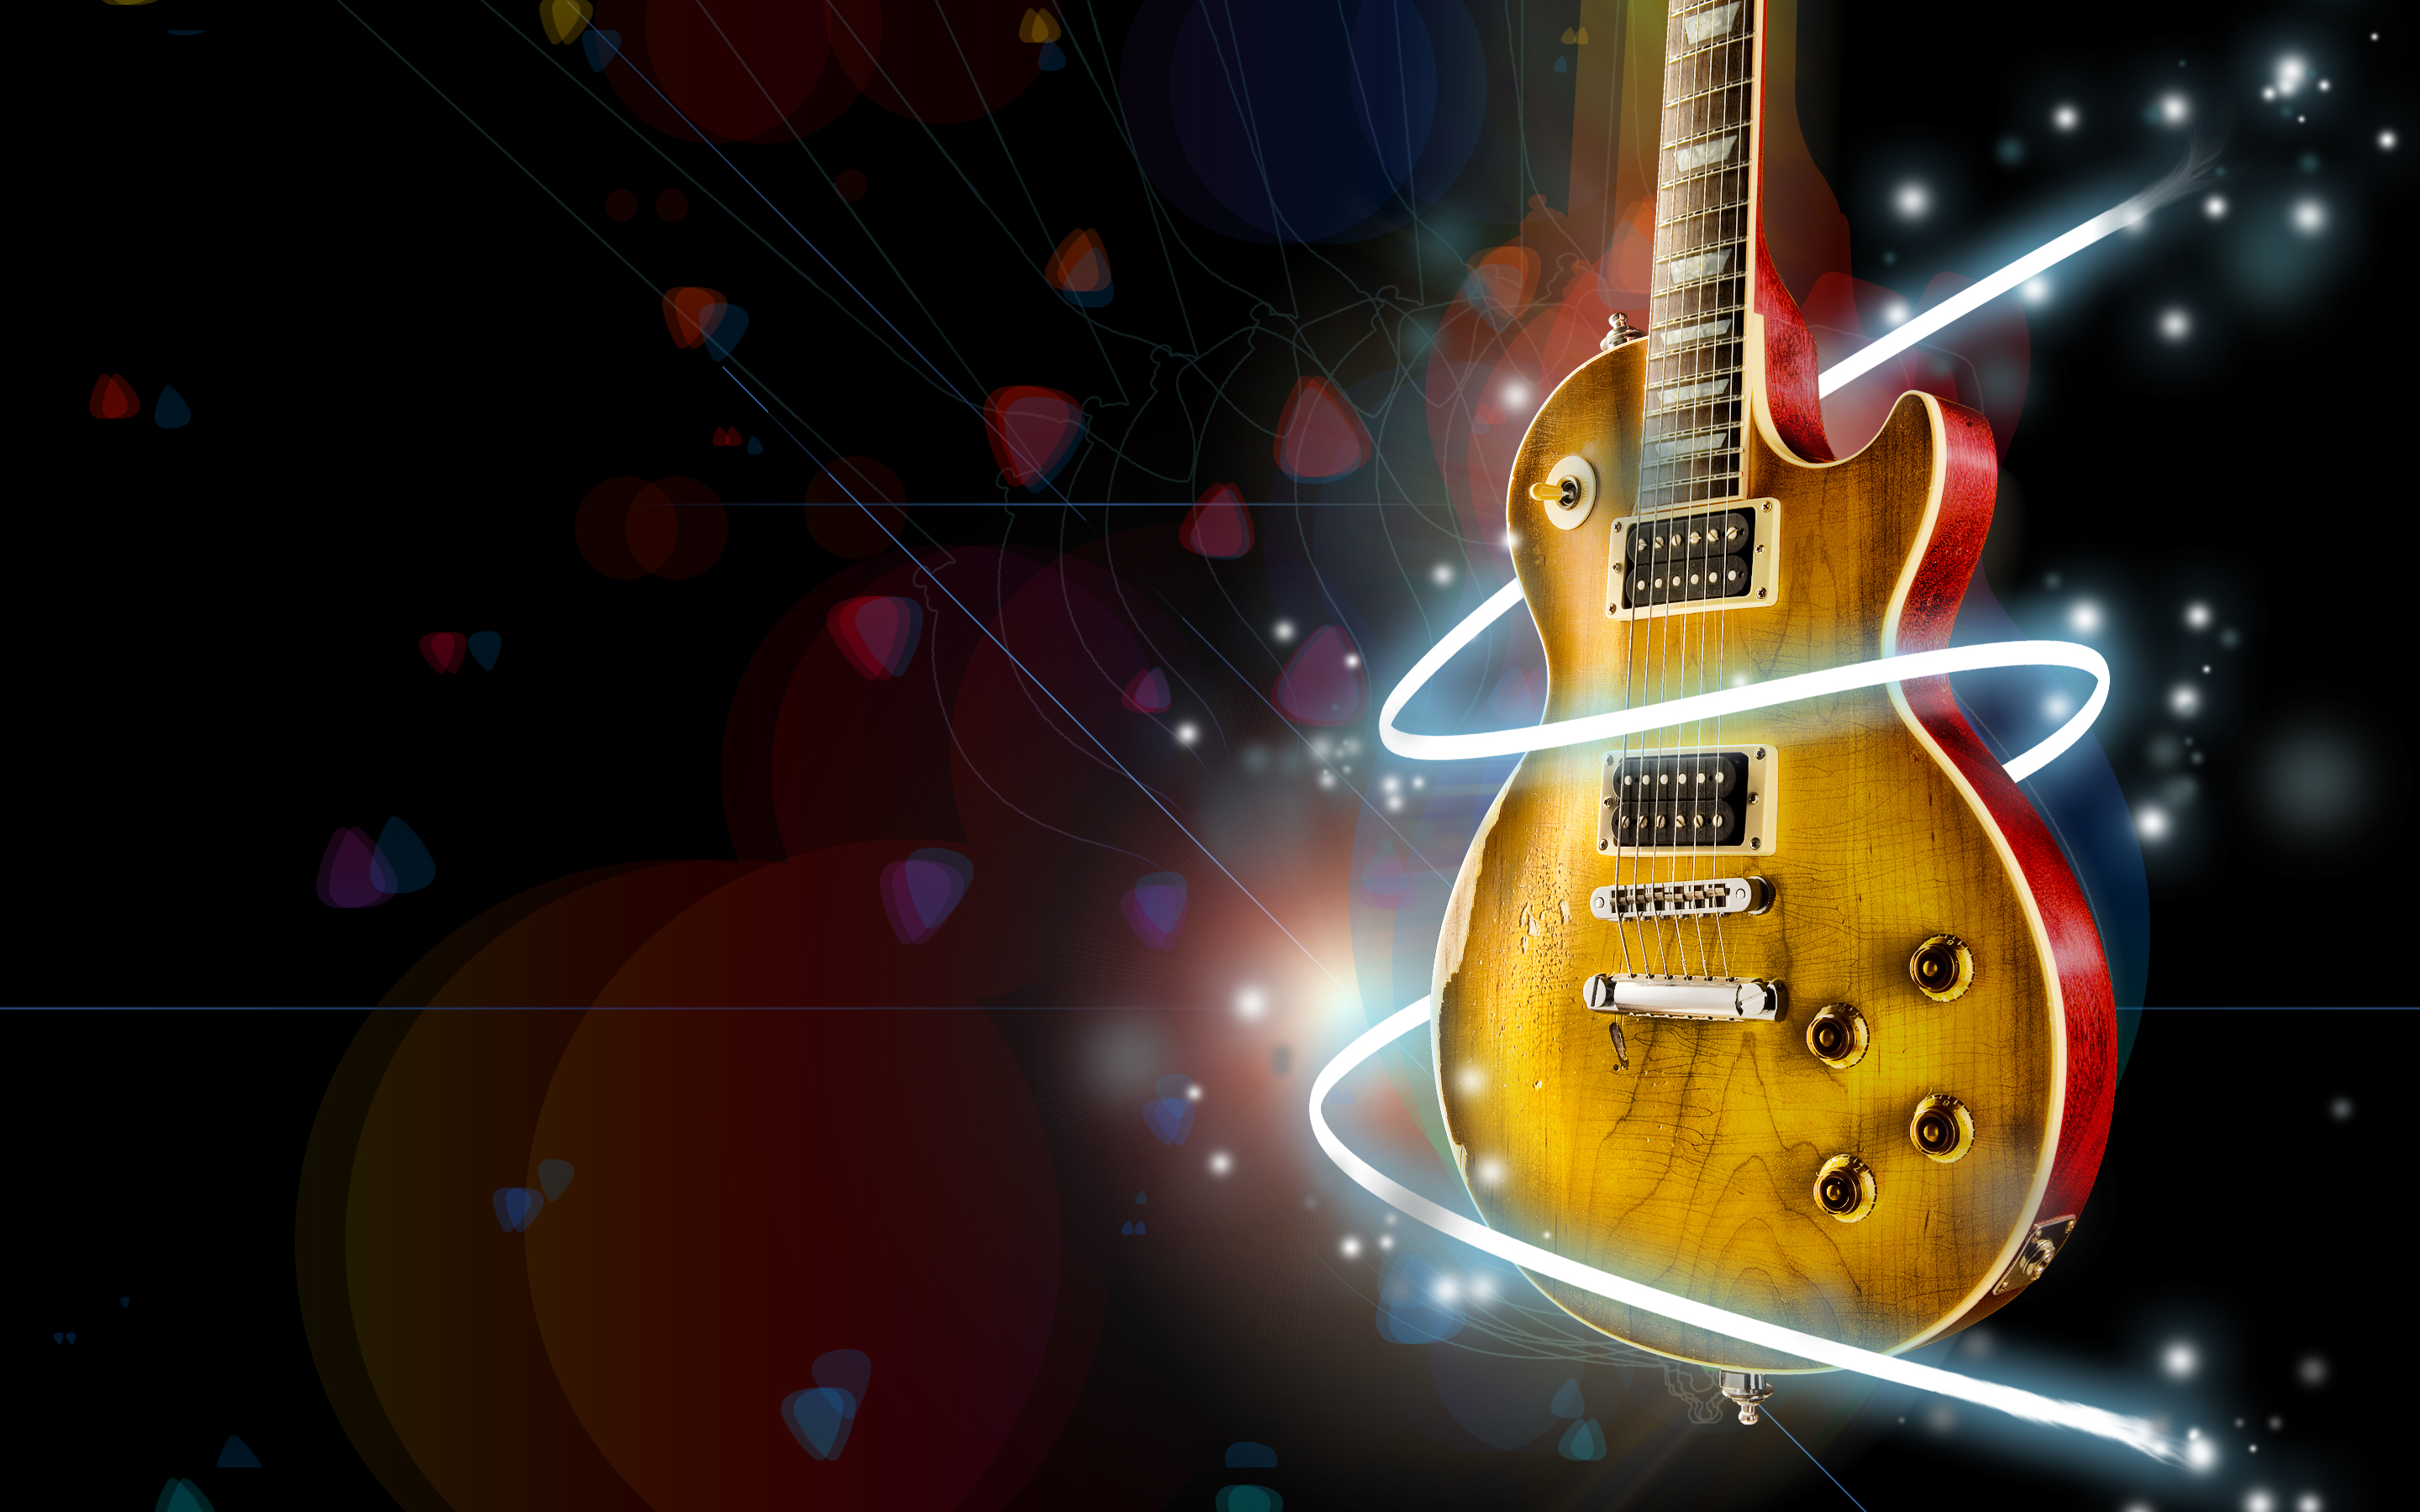 Guitar hd wallpaper background image 2880x1800 id - Music hd wallpapers free download ...